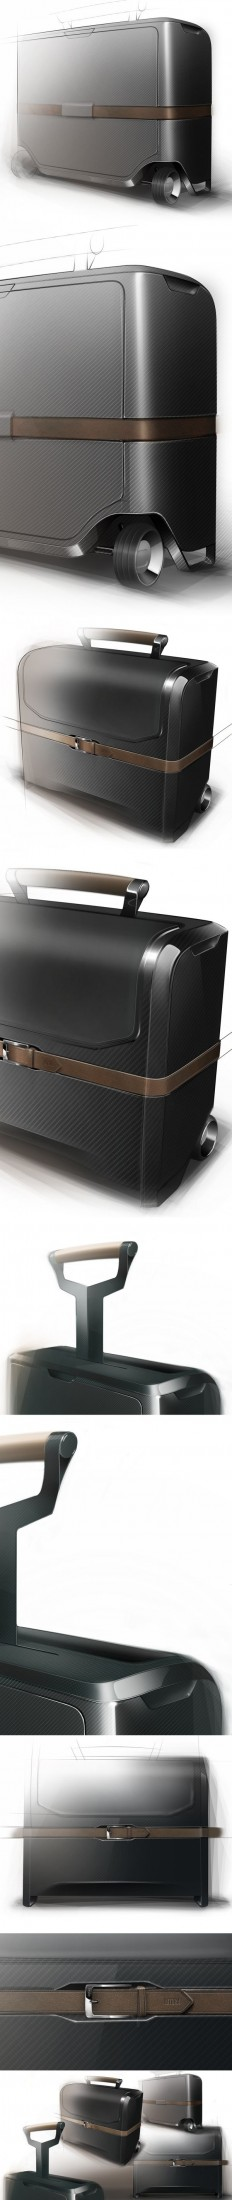 AIRLINE PILOT CASE - PERSONAL SKETCHES AND RENDERINGS by Francois Baptista, via Behance   DETAIL + CRAFTMANSHIP   Pinterest